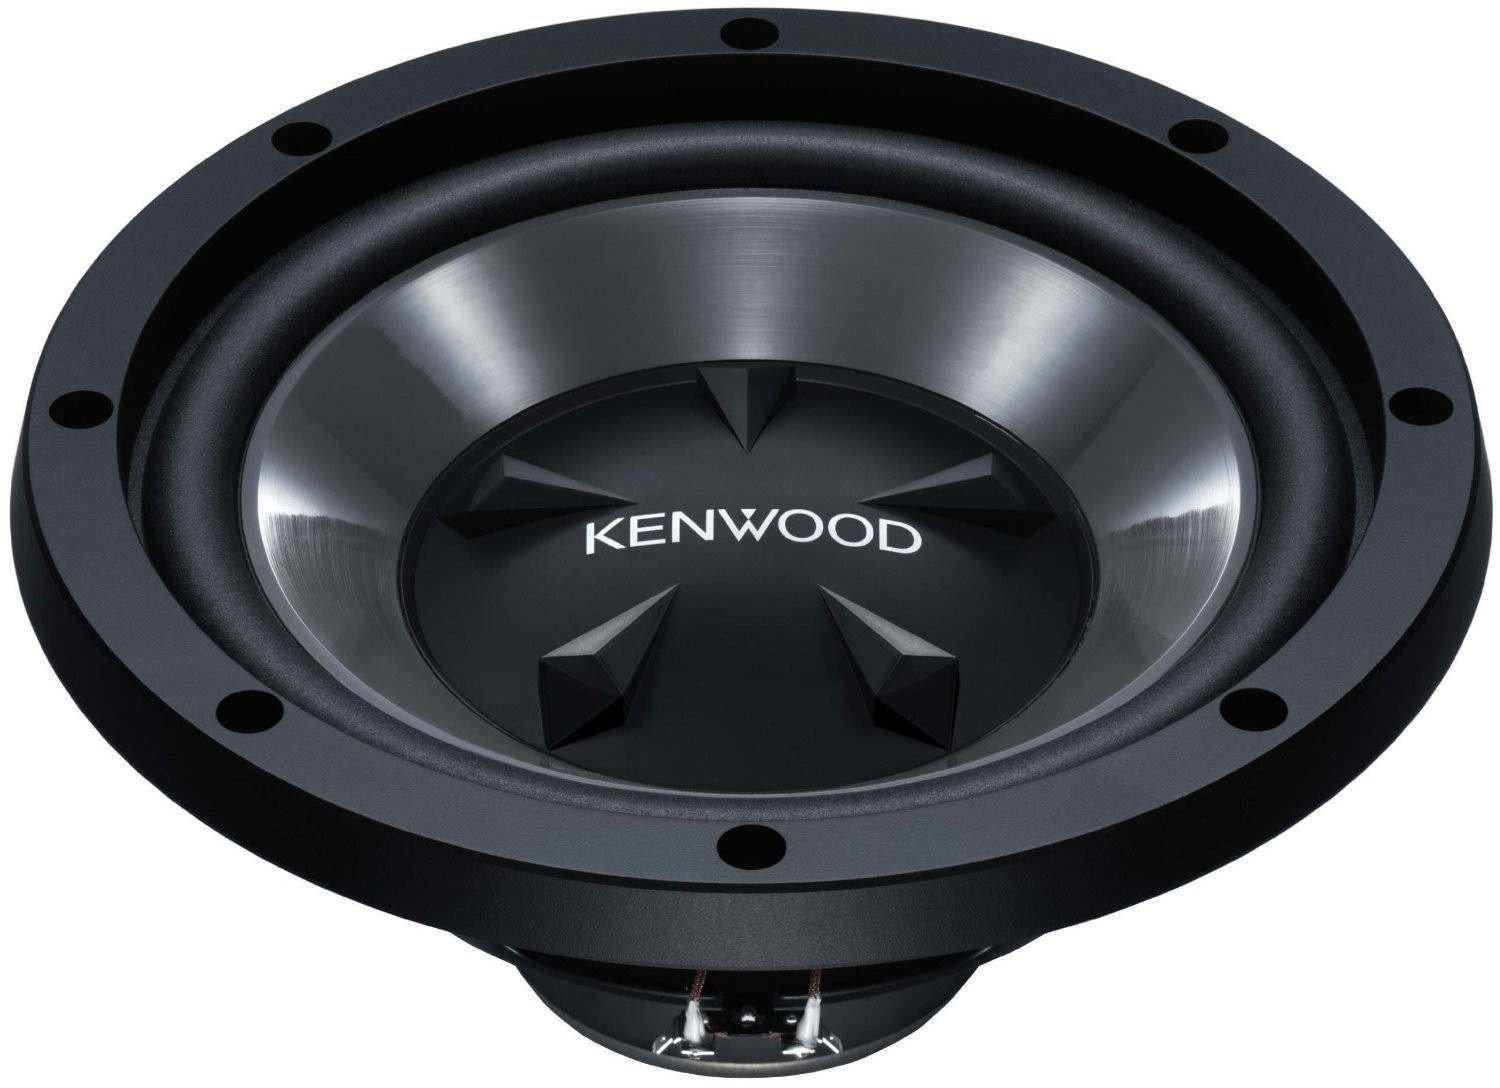 kenwood kfc w112 s test auto subwoofer. Black Bedroom Furniture Sets. Home Design Ideas